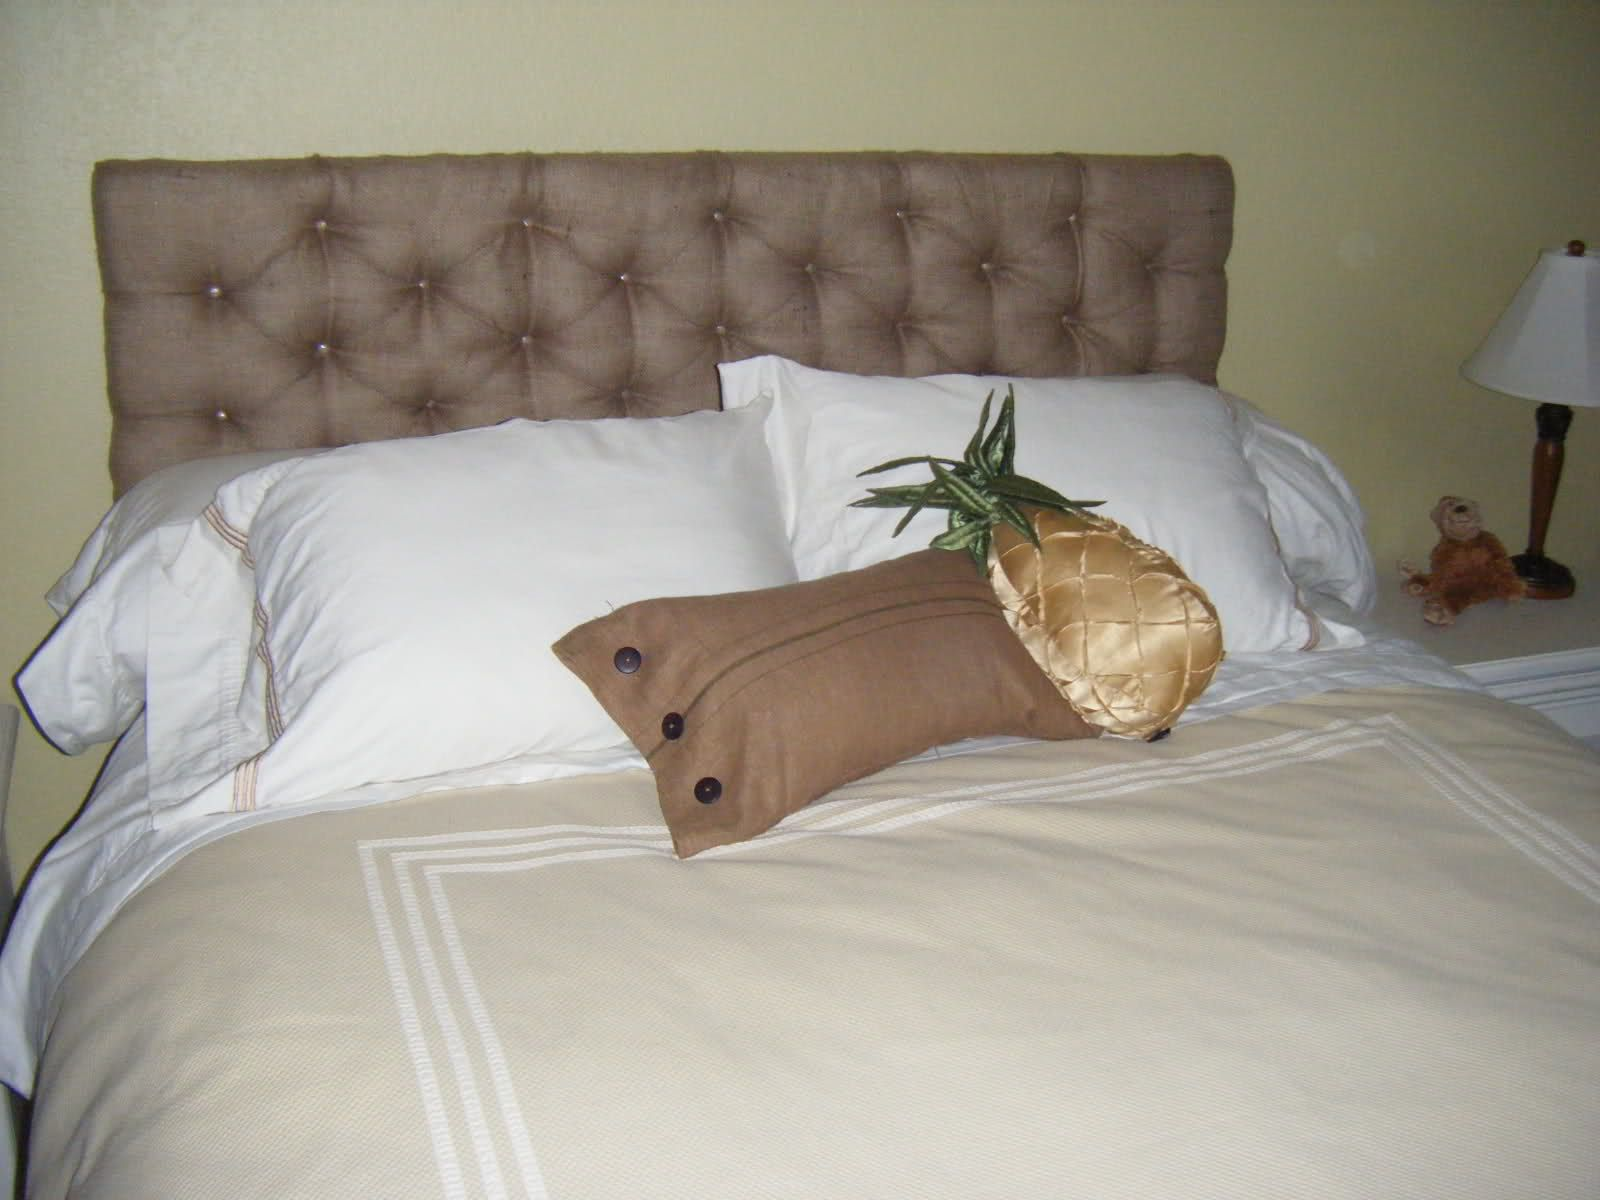 Homemade Head Boards show me your homemade headboards | homemade headboards, bedrooms